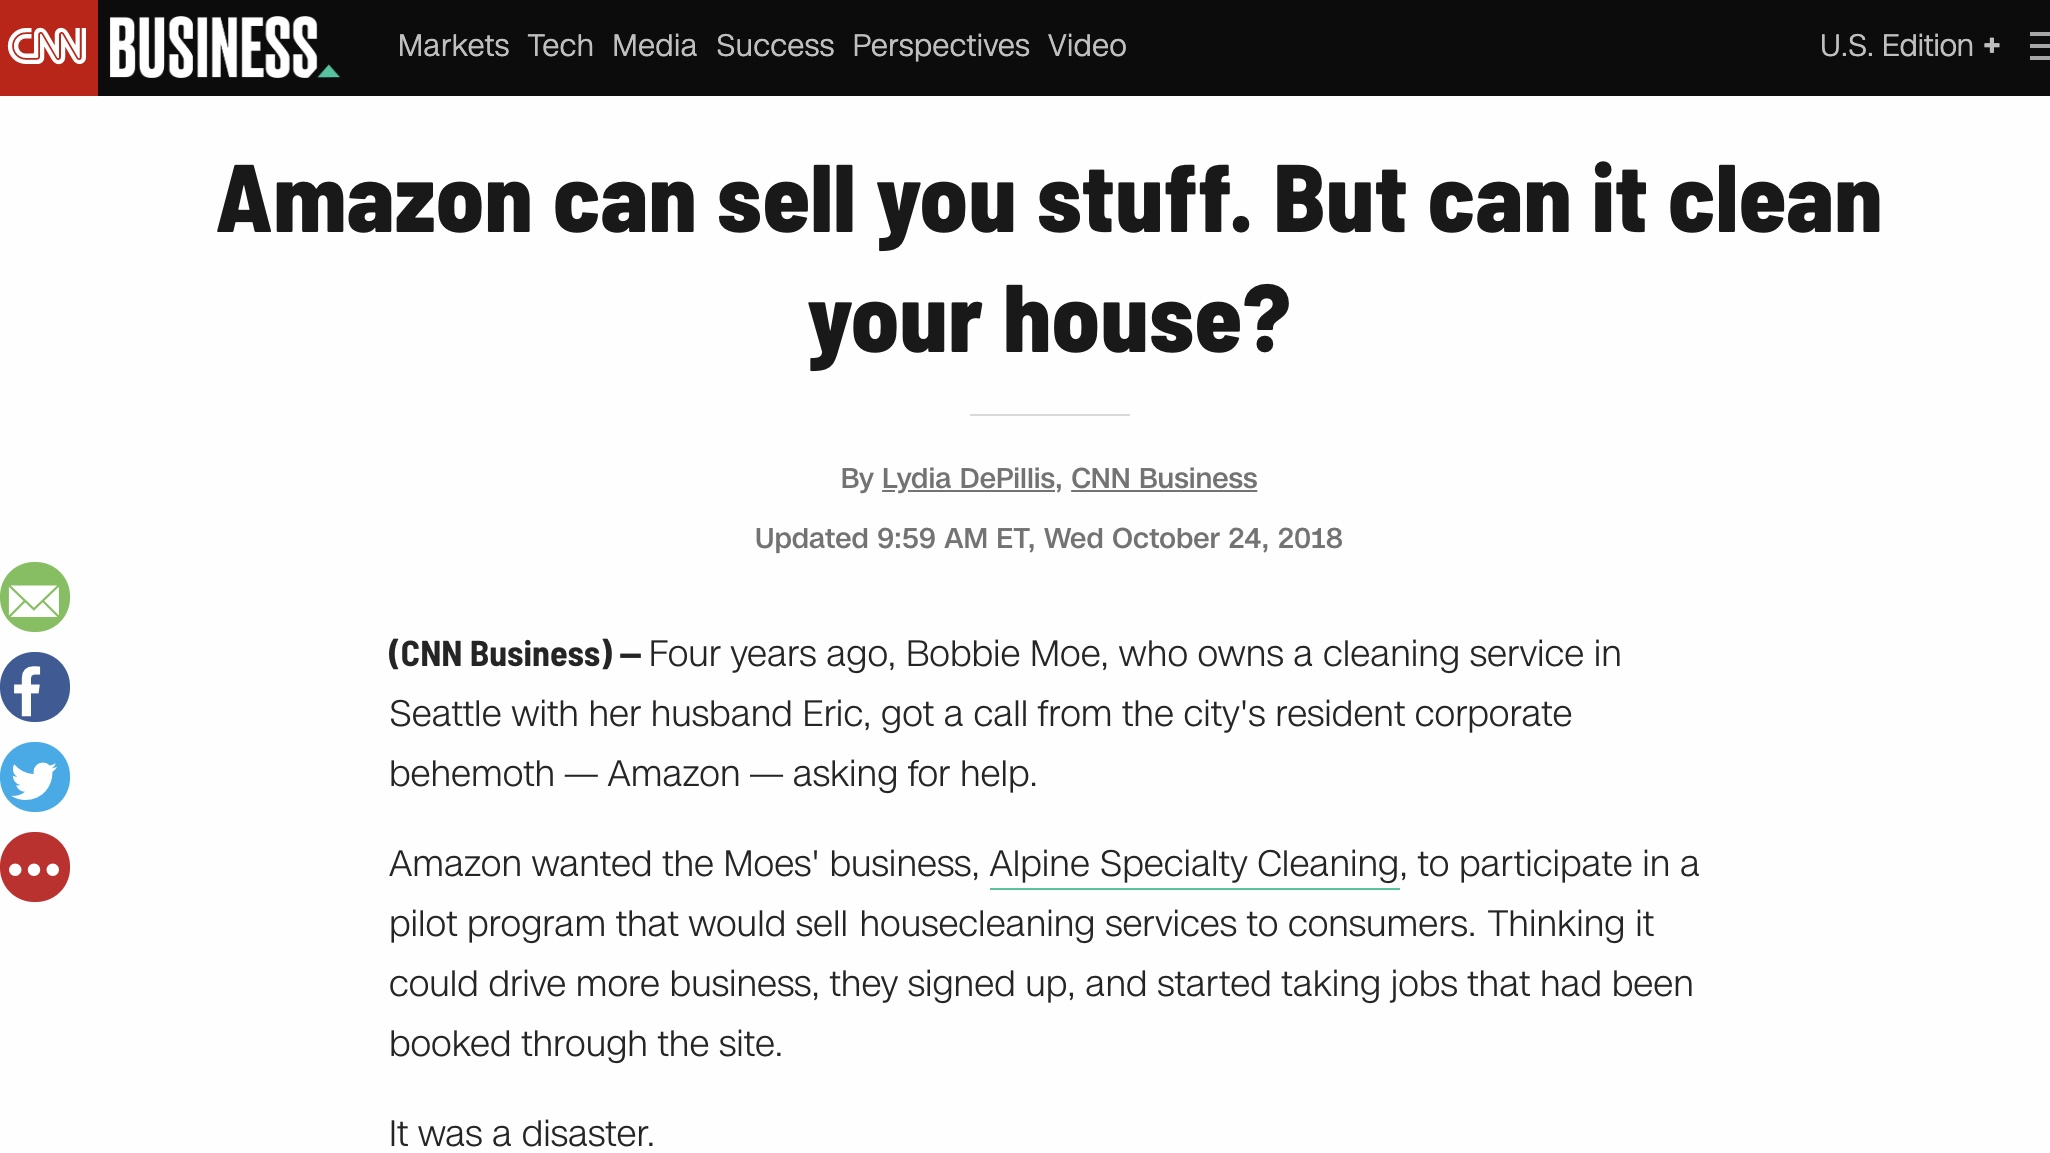 CNN BUSINESS - Amazon can sell you stuff. But can it clean your house?